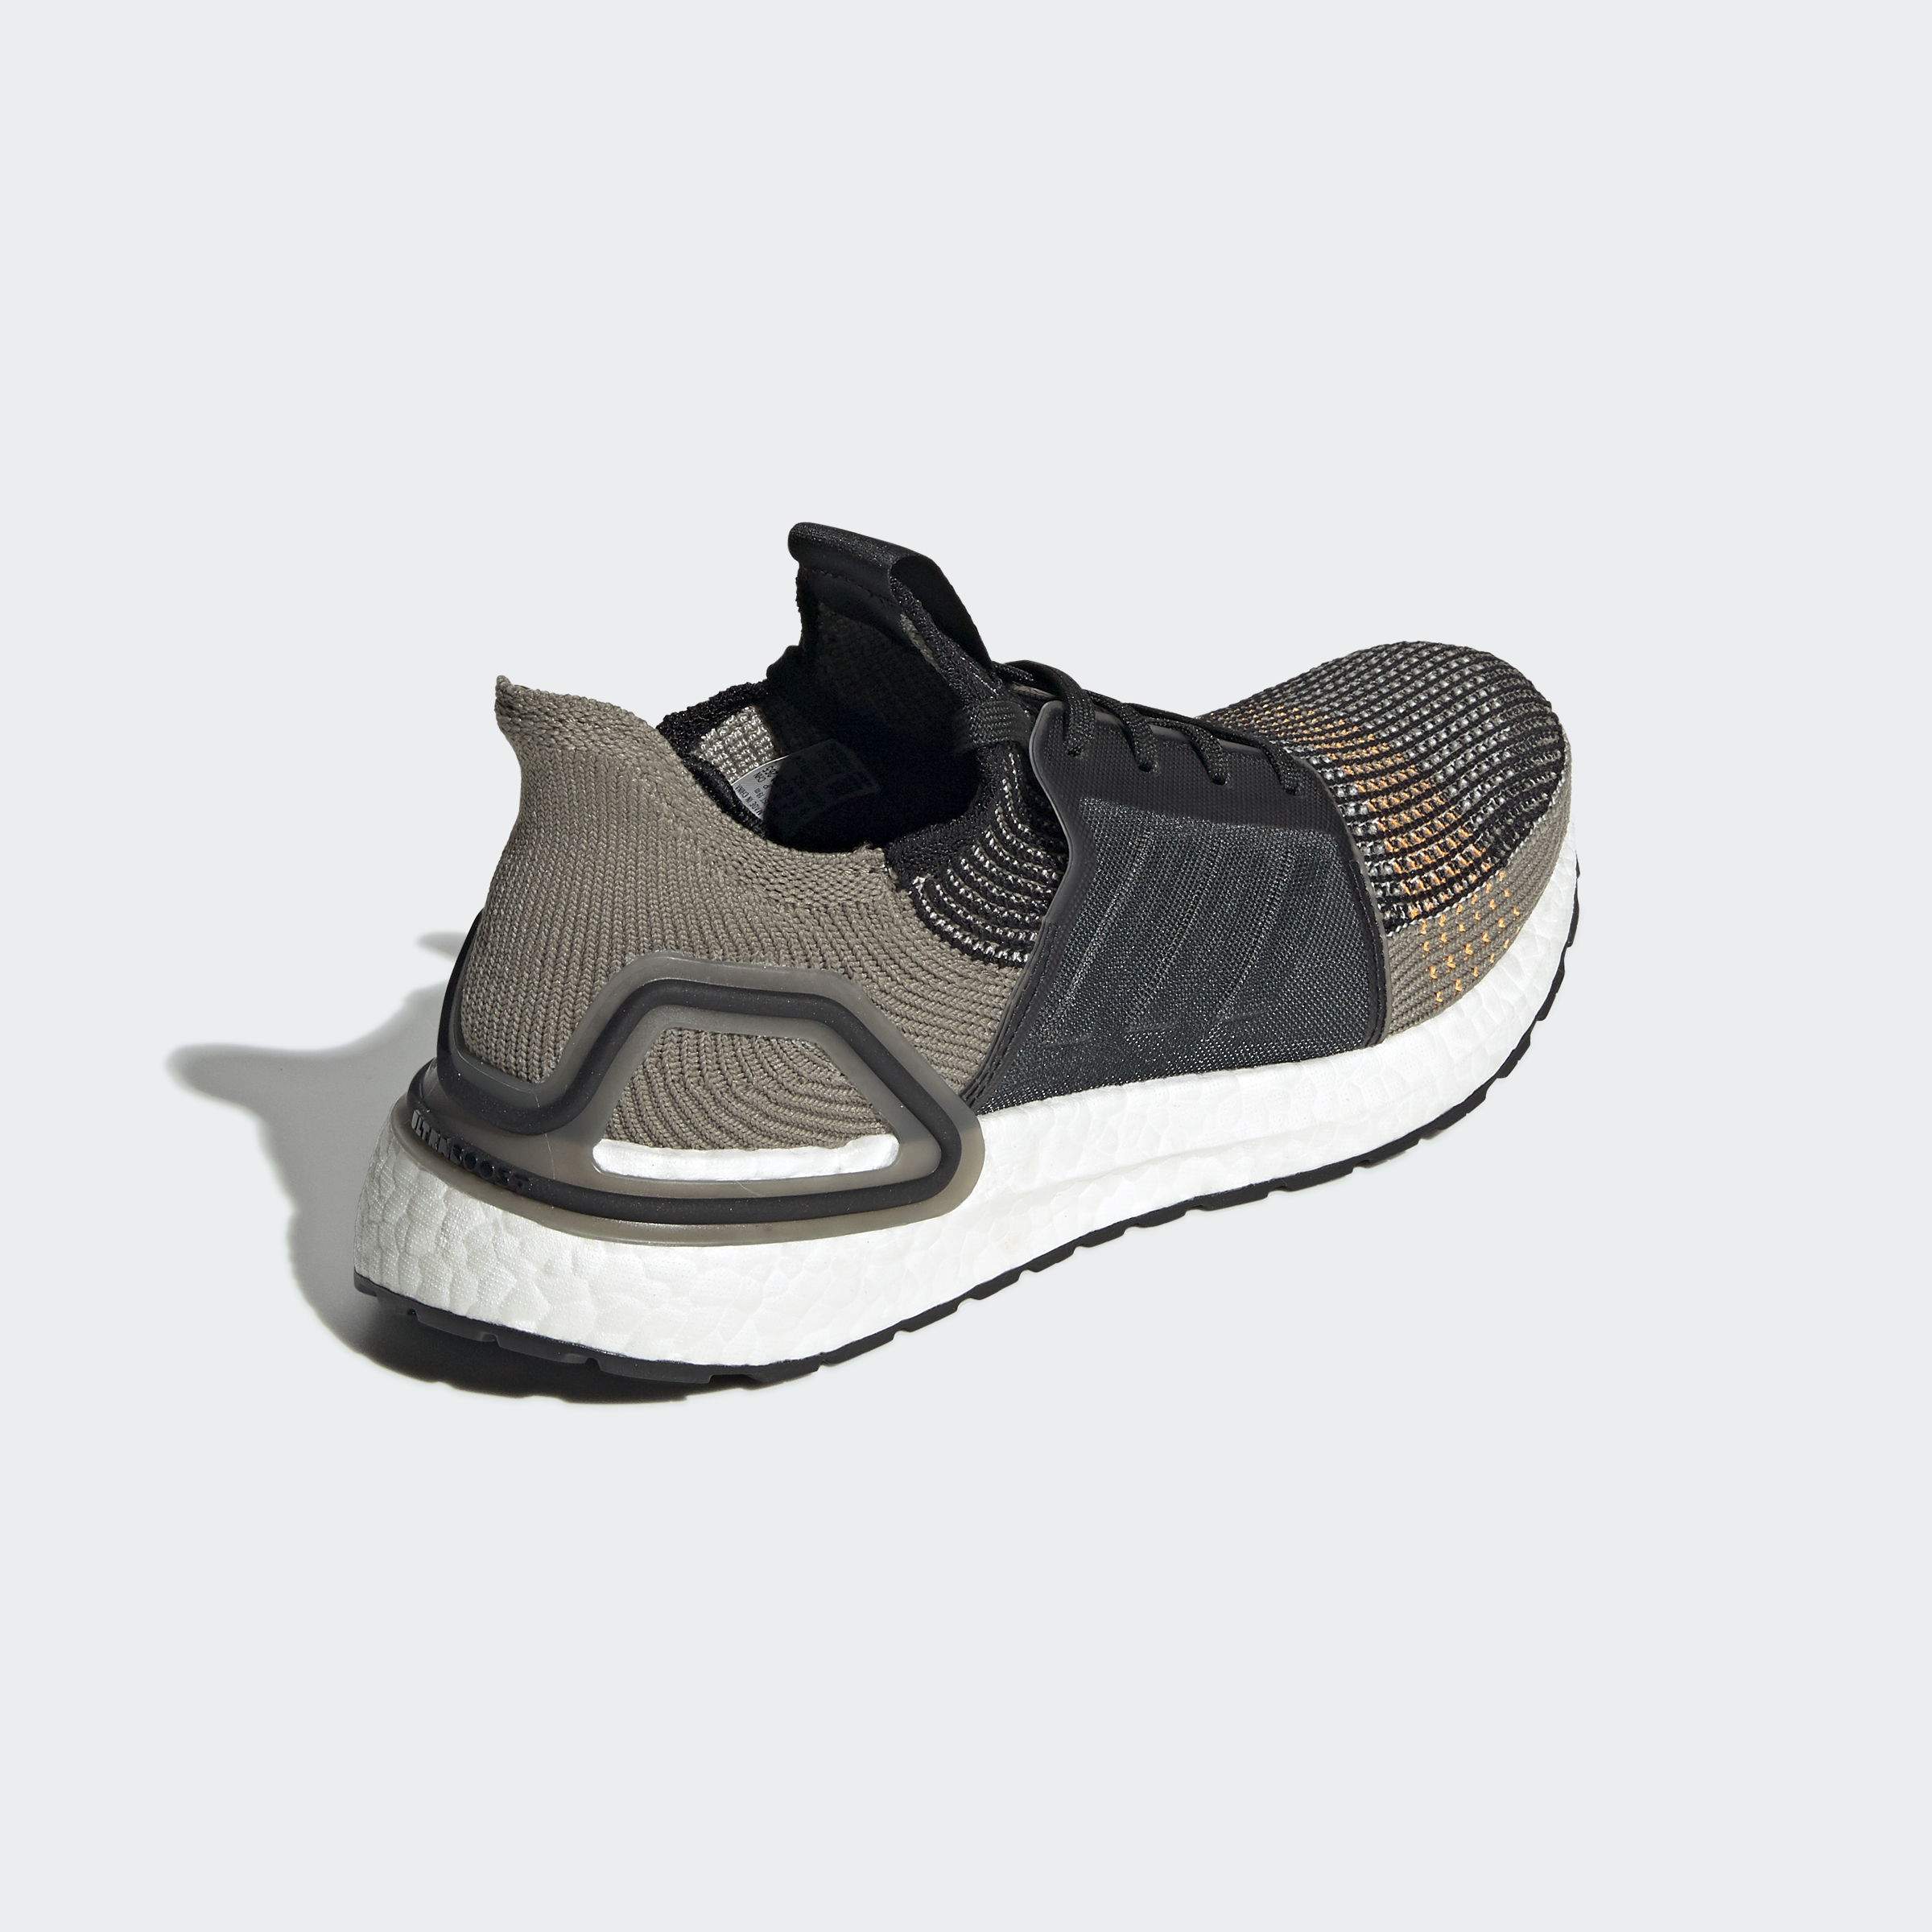 adidas-Ultraboost-19-Shoes-Athletic-amp-Sneakers thumbnail 83